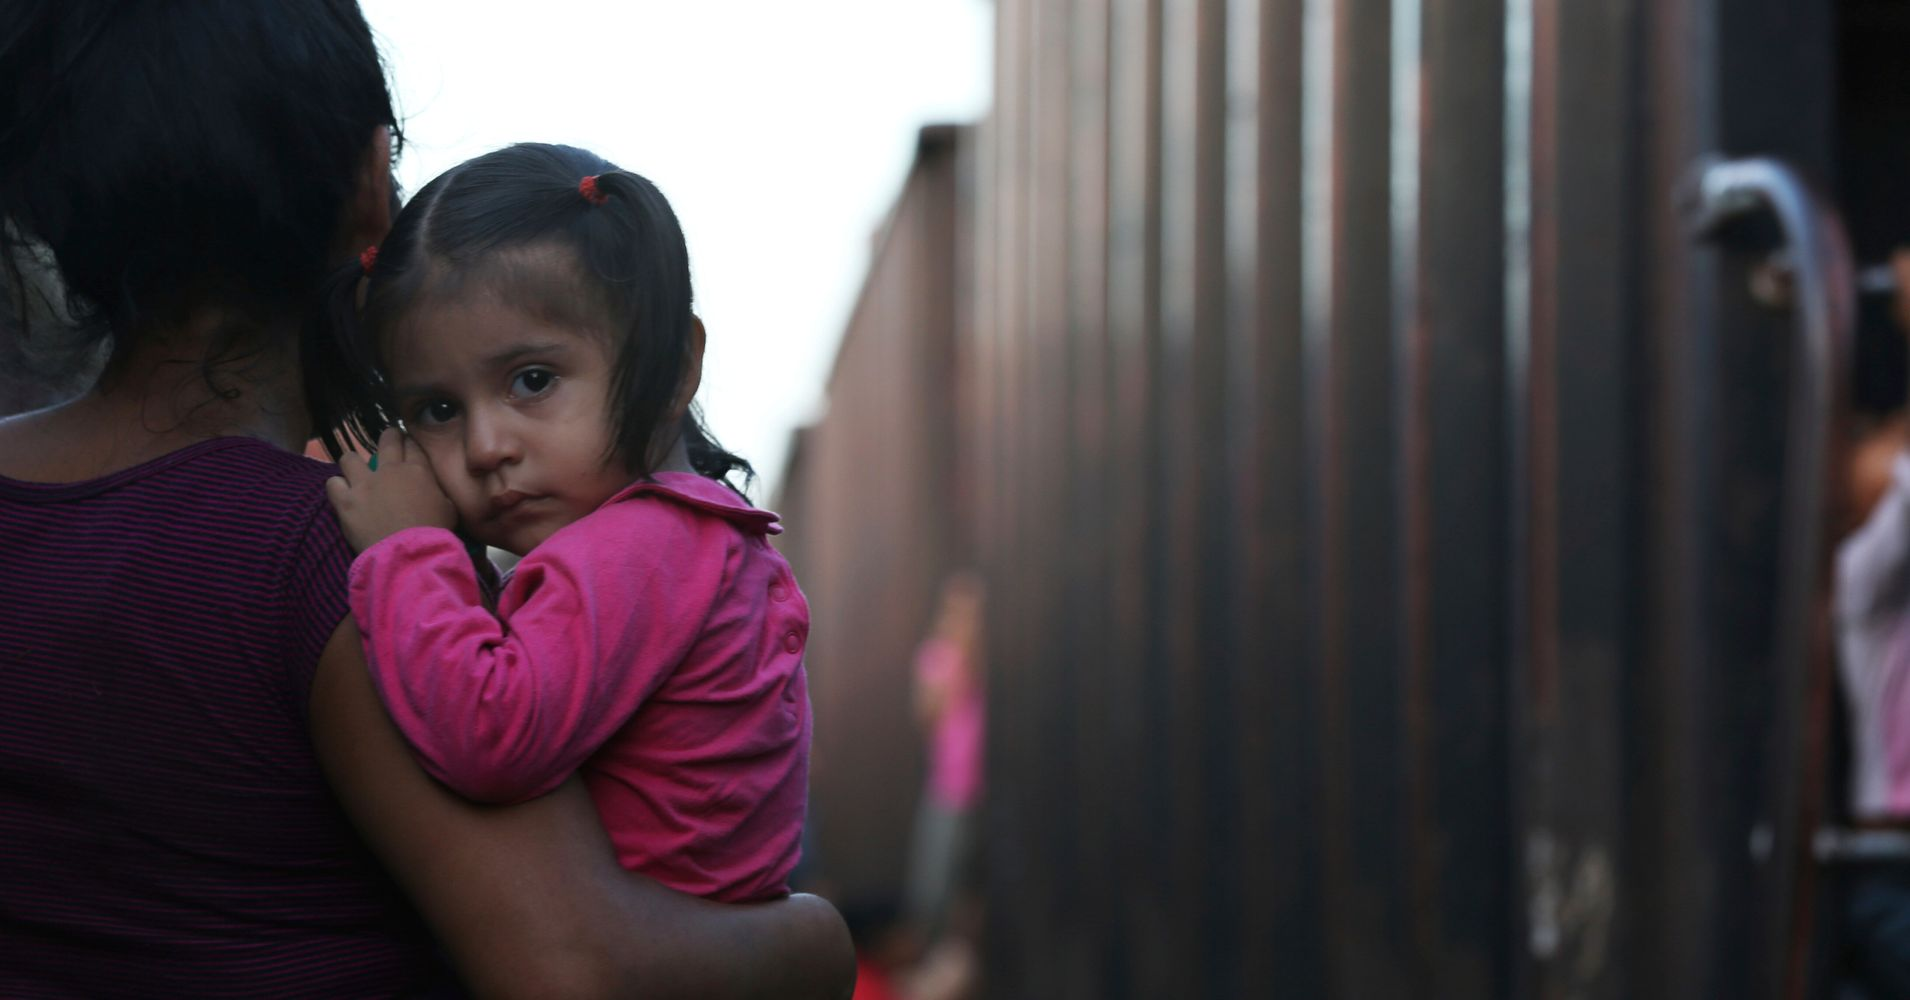 18 Migrant Infants And Toddlers Separated For Weeks Or Months, House Report Finds 1